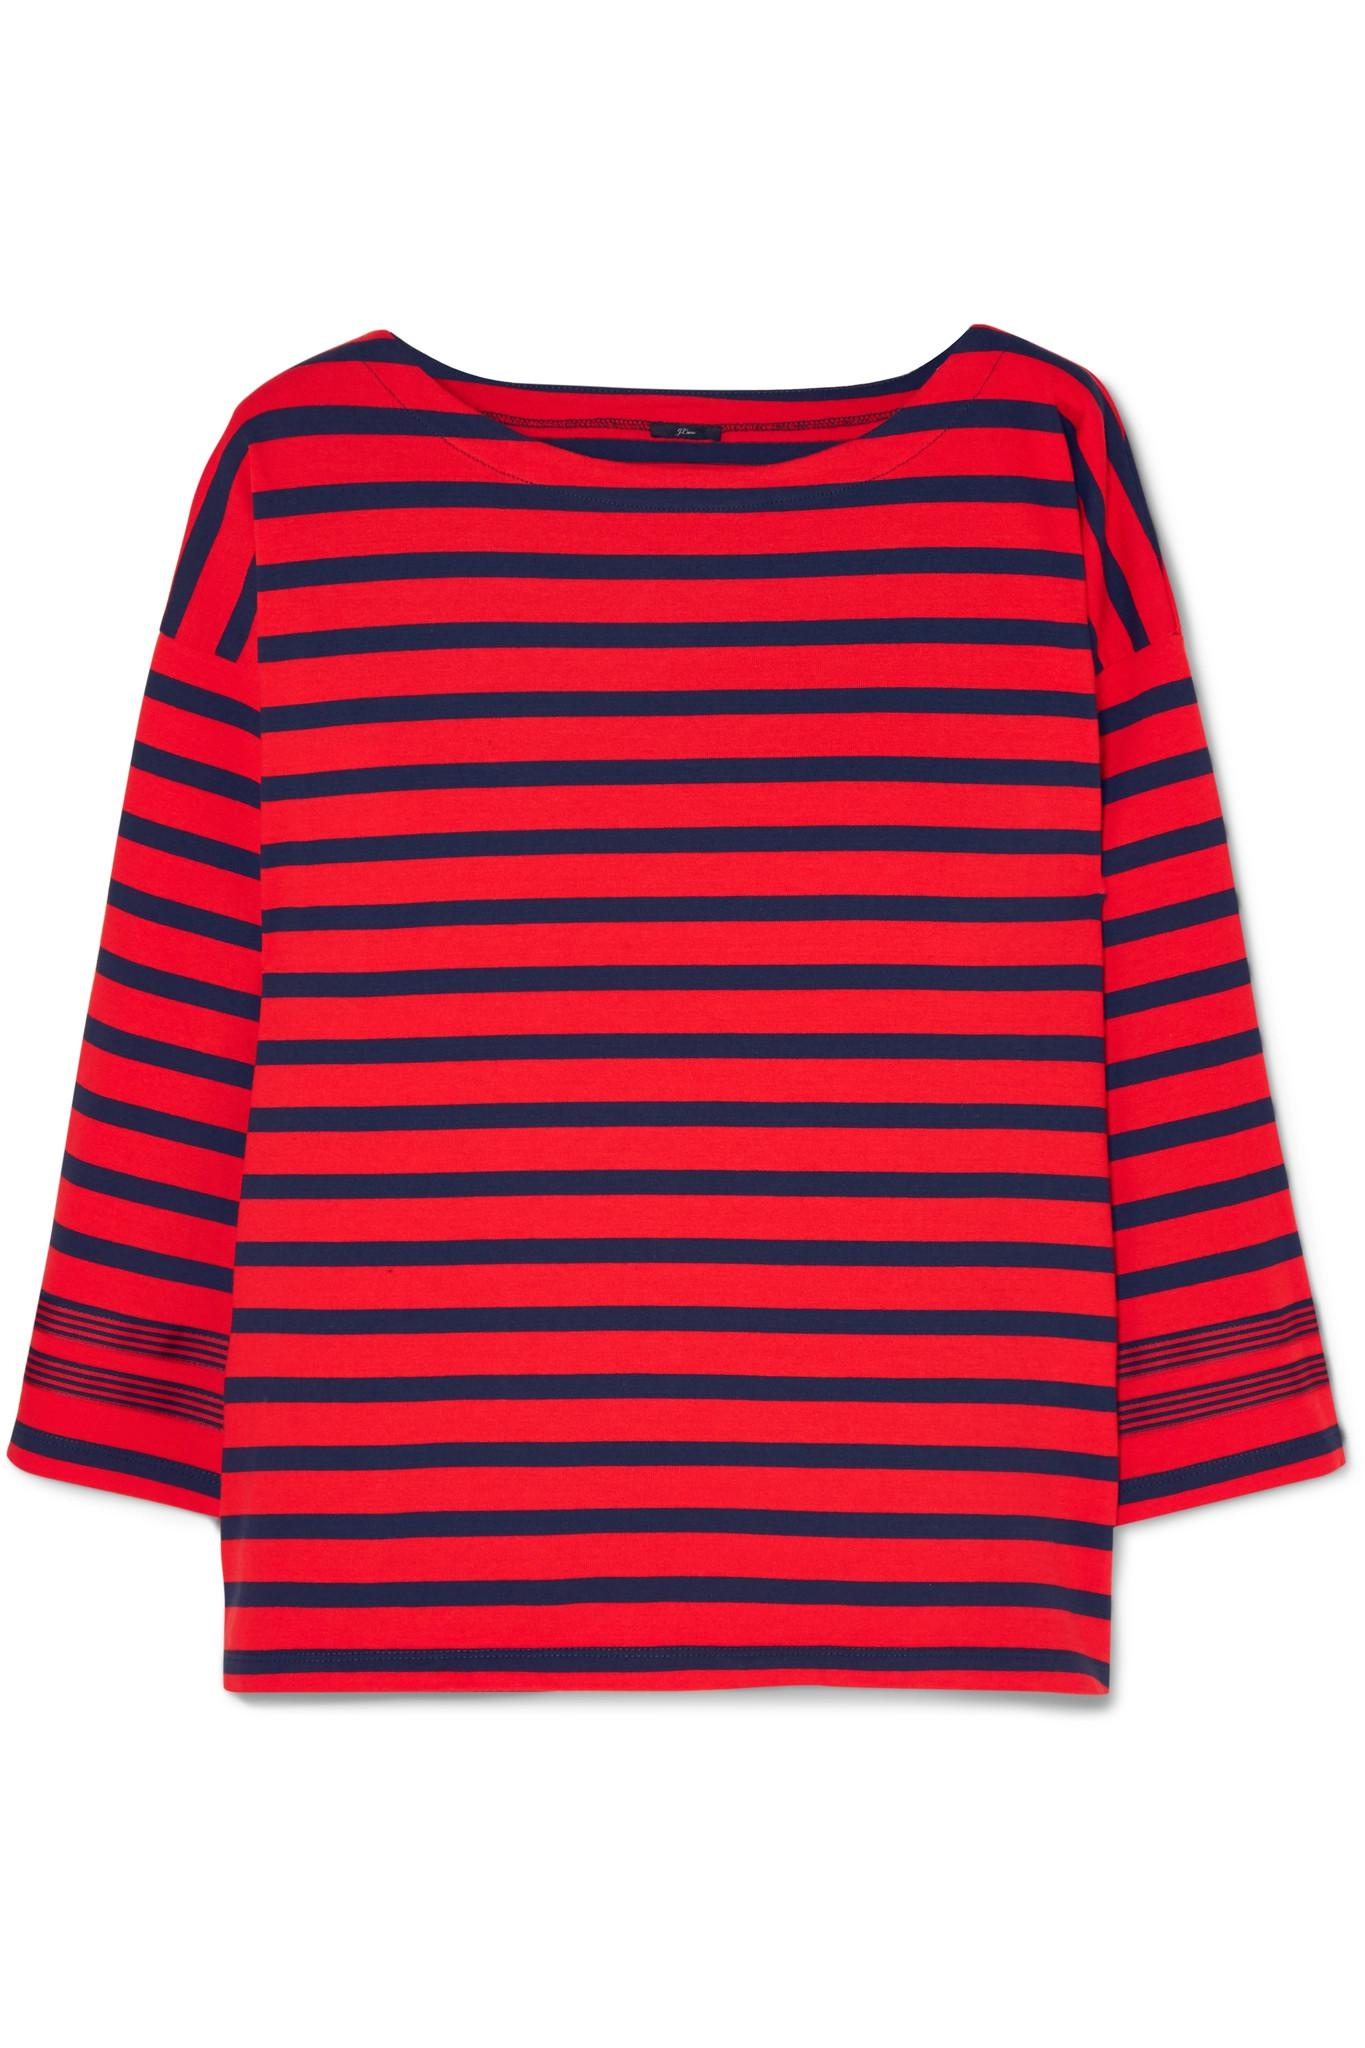 c615188cbadf5 J.Crew Grosgrain-trimmed Striped Cotton-jersey Top in Red - Lyst